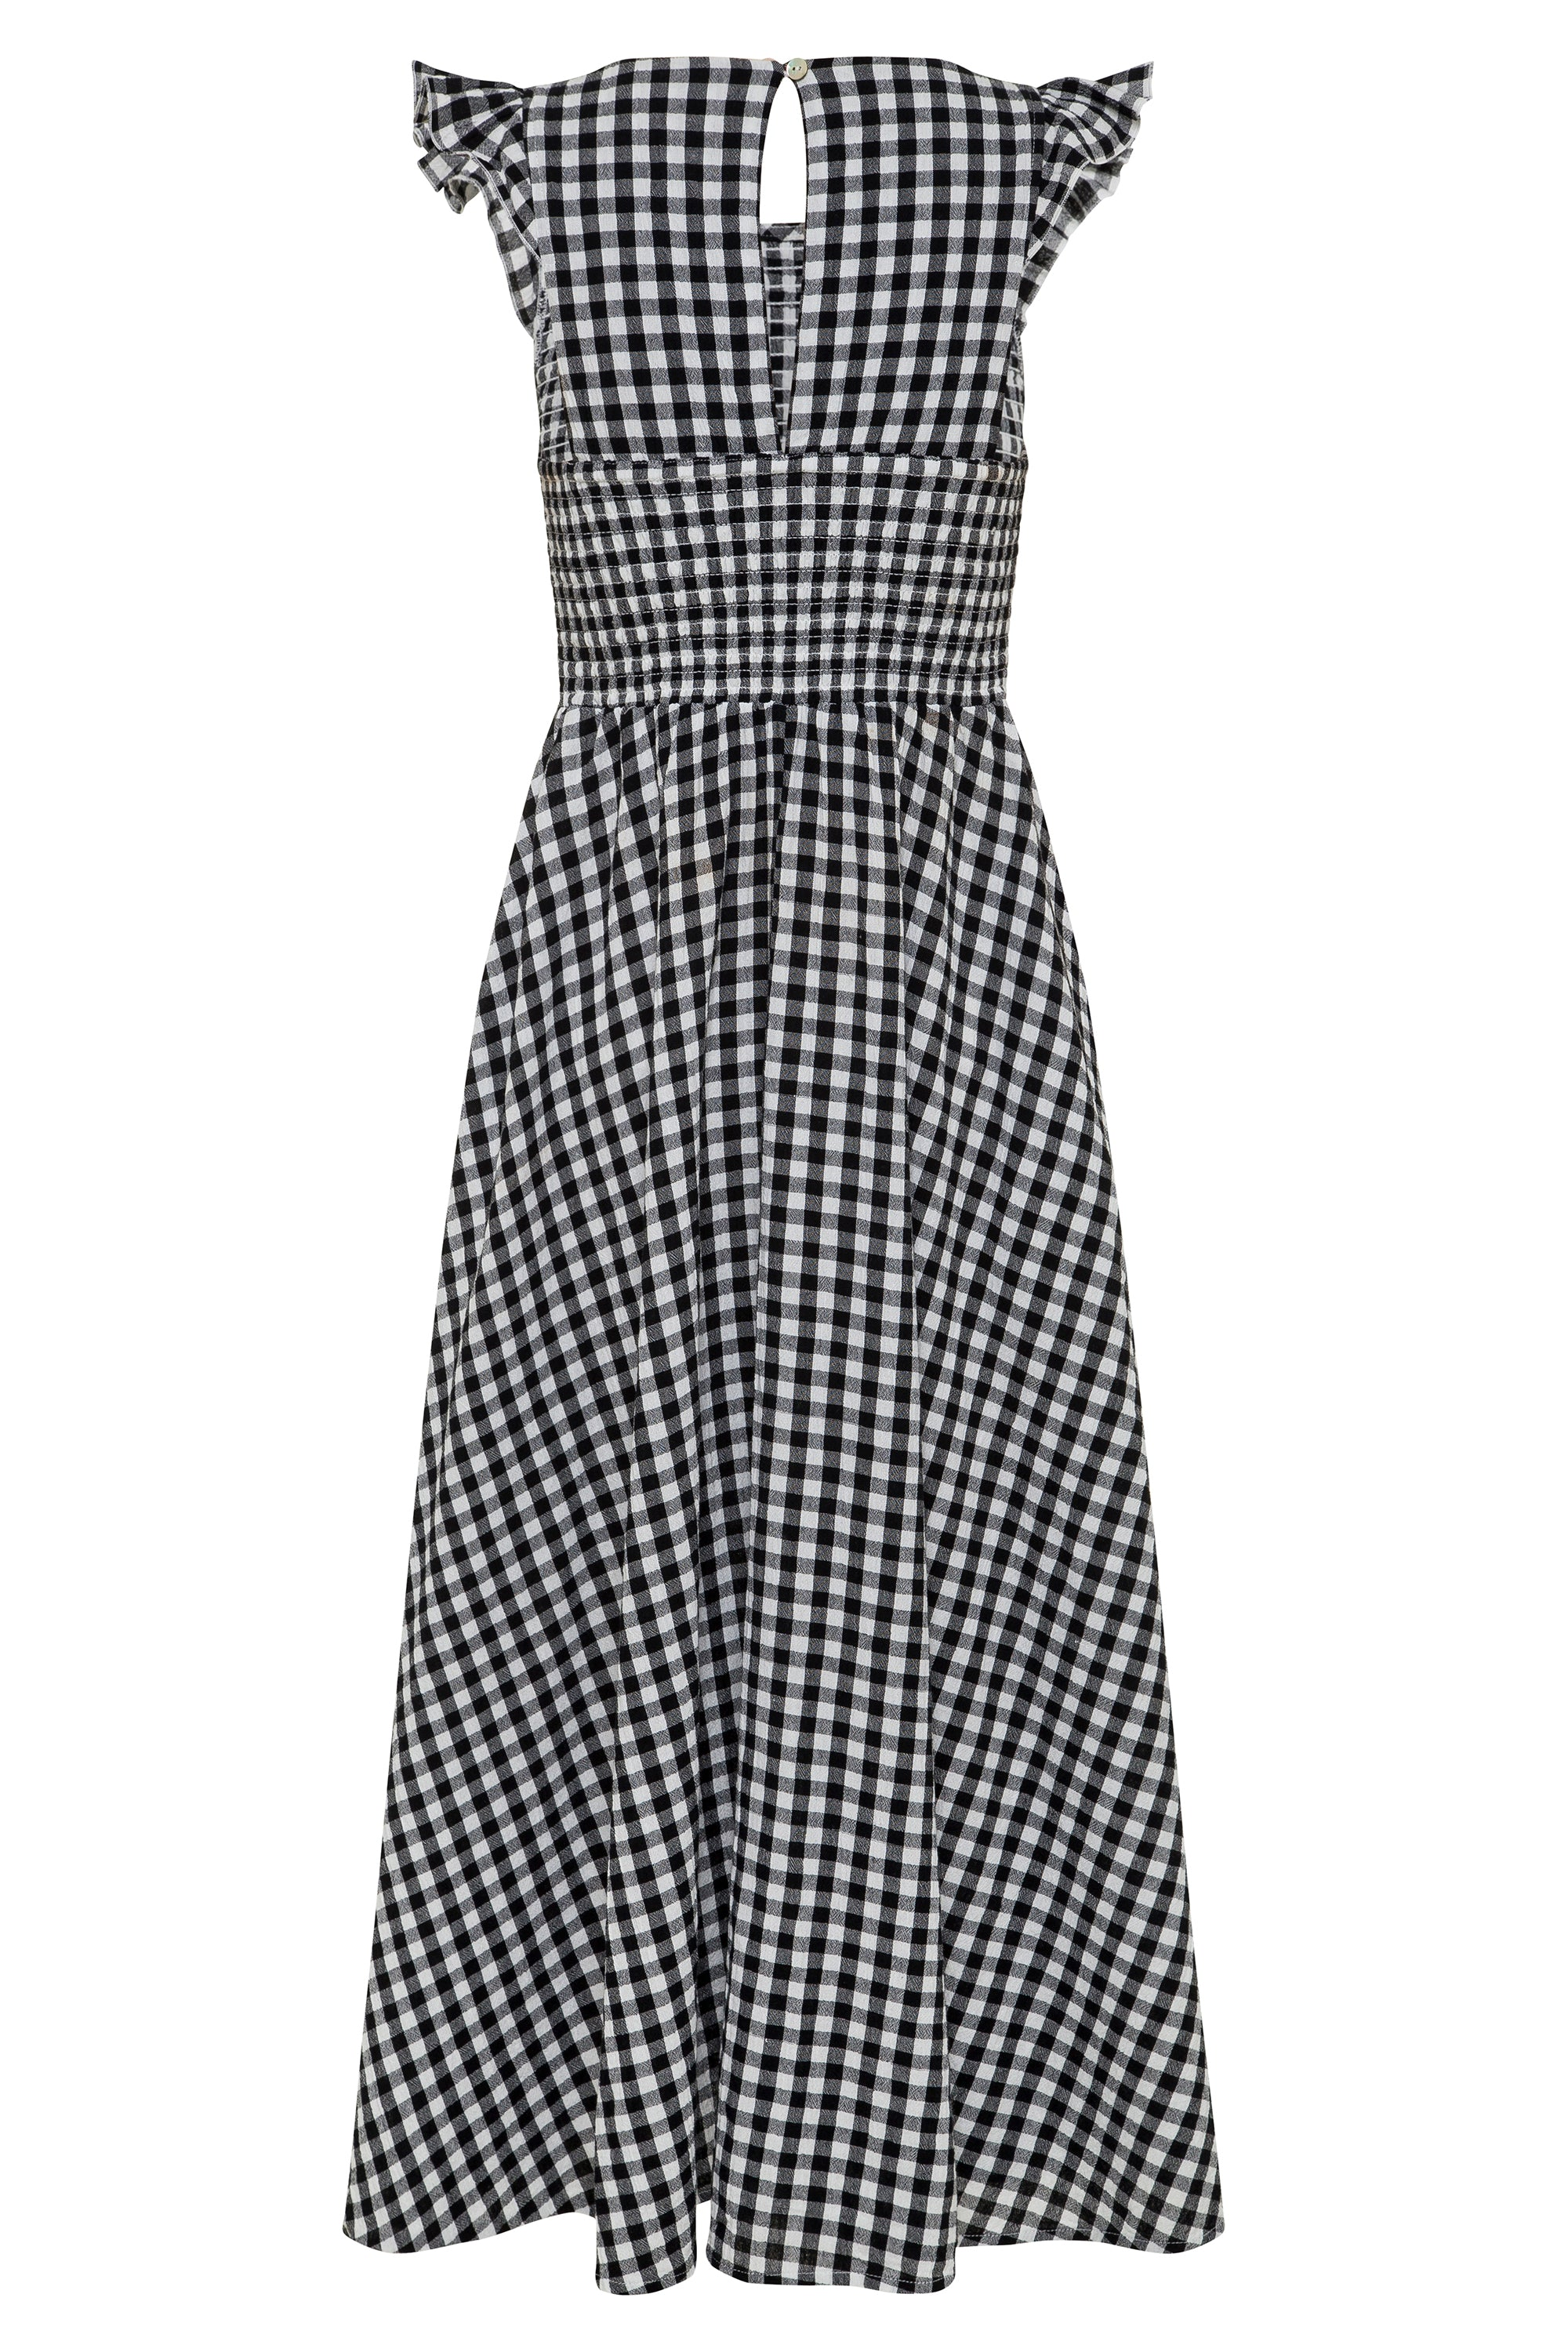 Abbie Dress In Black Gingham